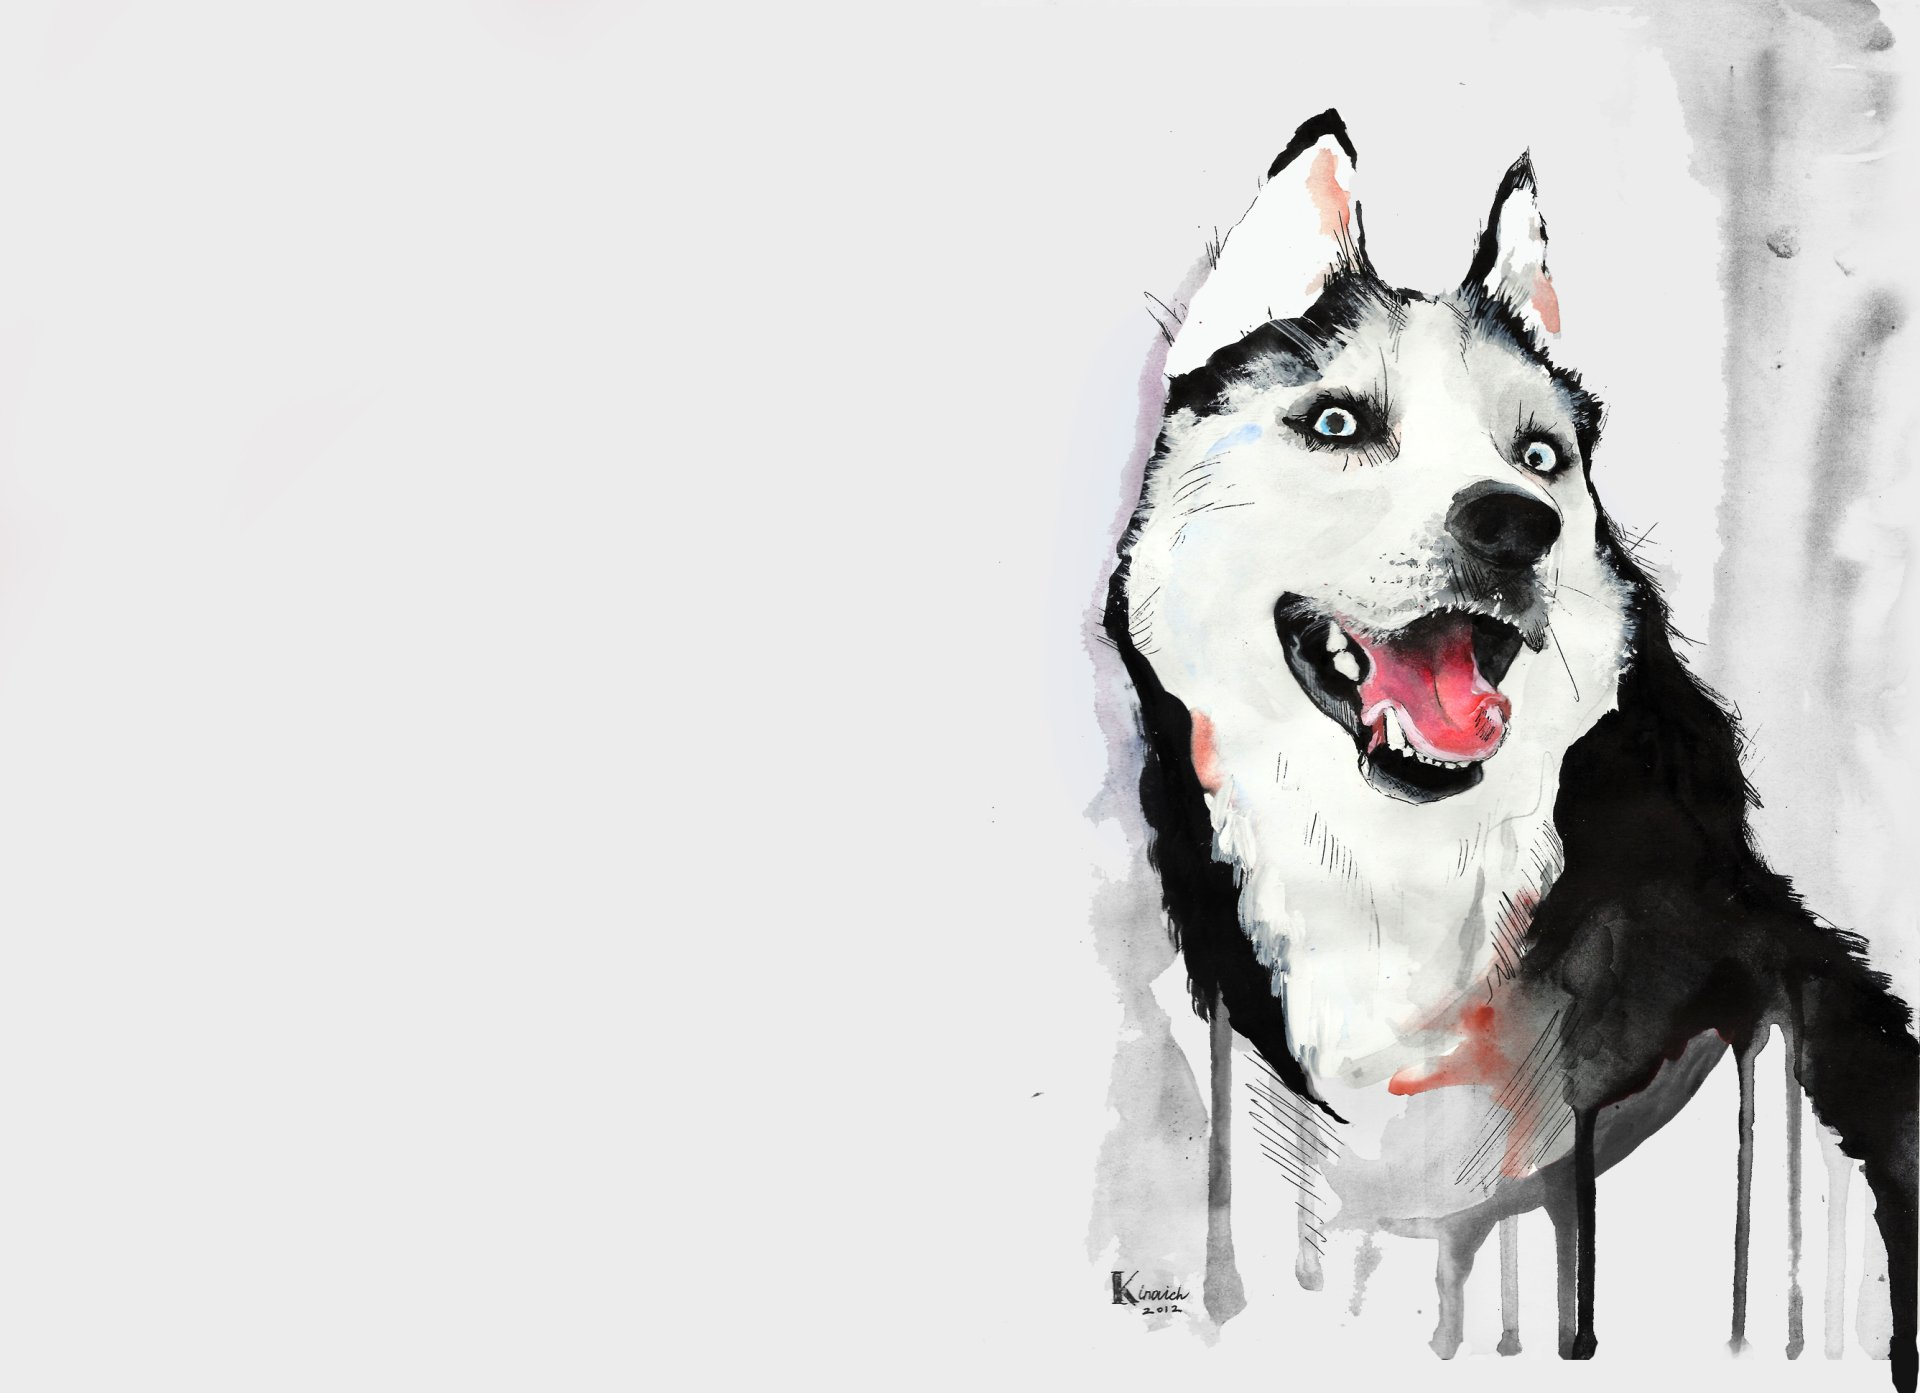 Animal - Artistic  Wallpaper